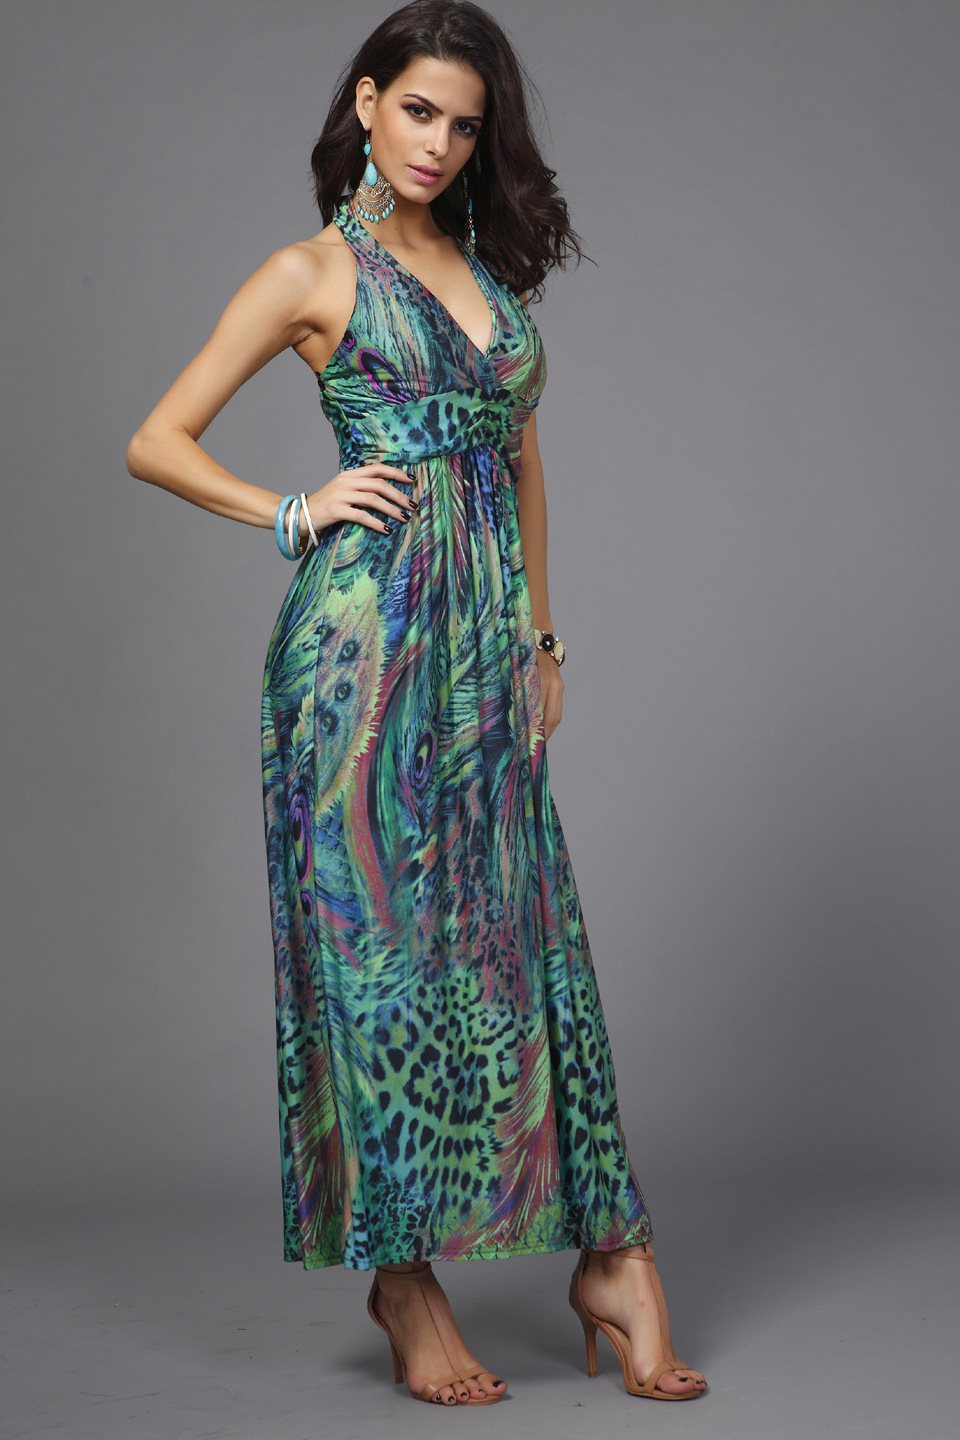 42719ac5fdf794 Milk Silk Chiffon Dresses Slim Waist Halter V neck Peacock Printing  Colorful Bohemia Sleeveless Long Beach Dress-in Dresses from Women's  Clothing on ...